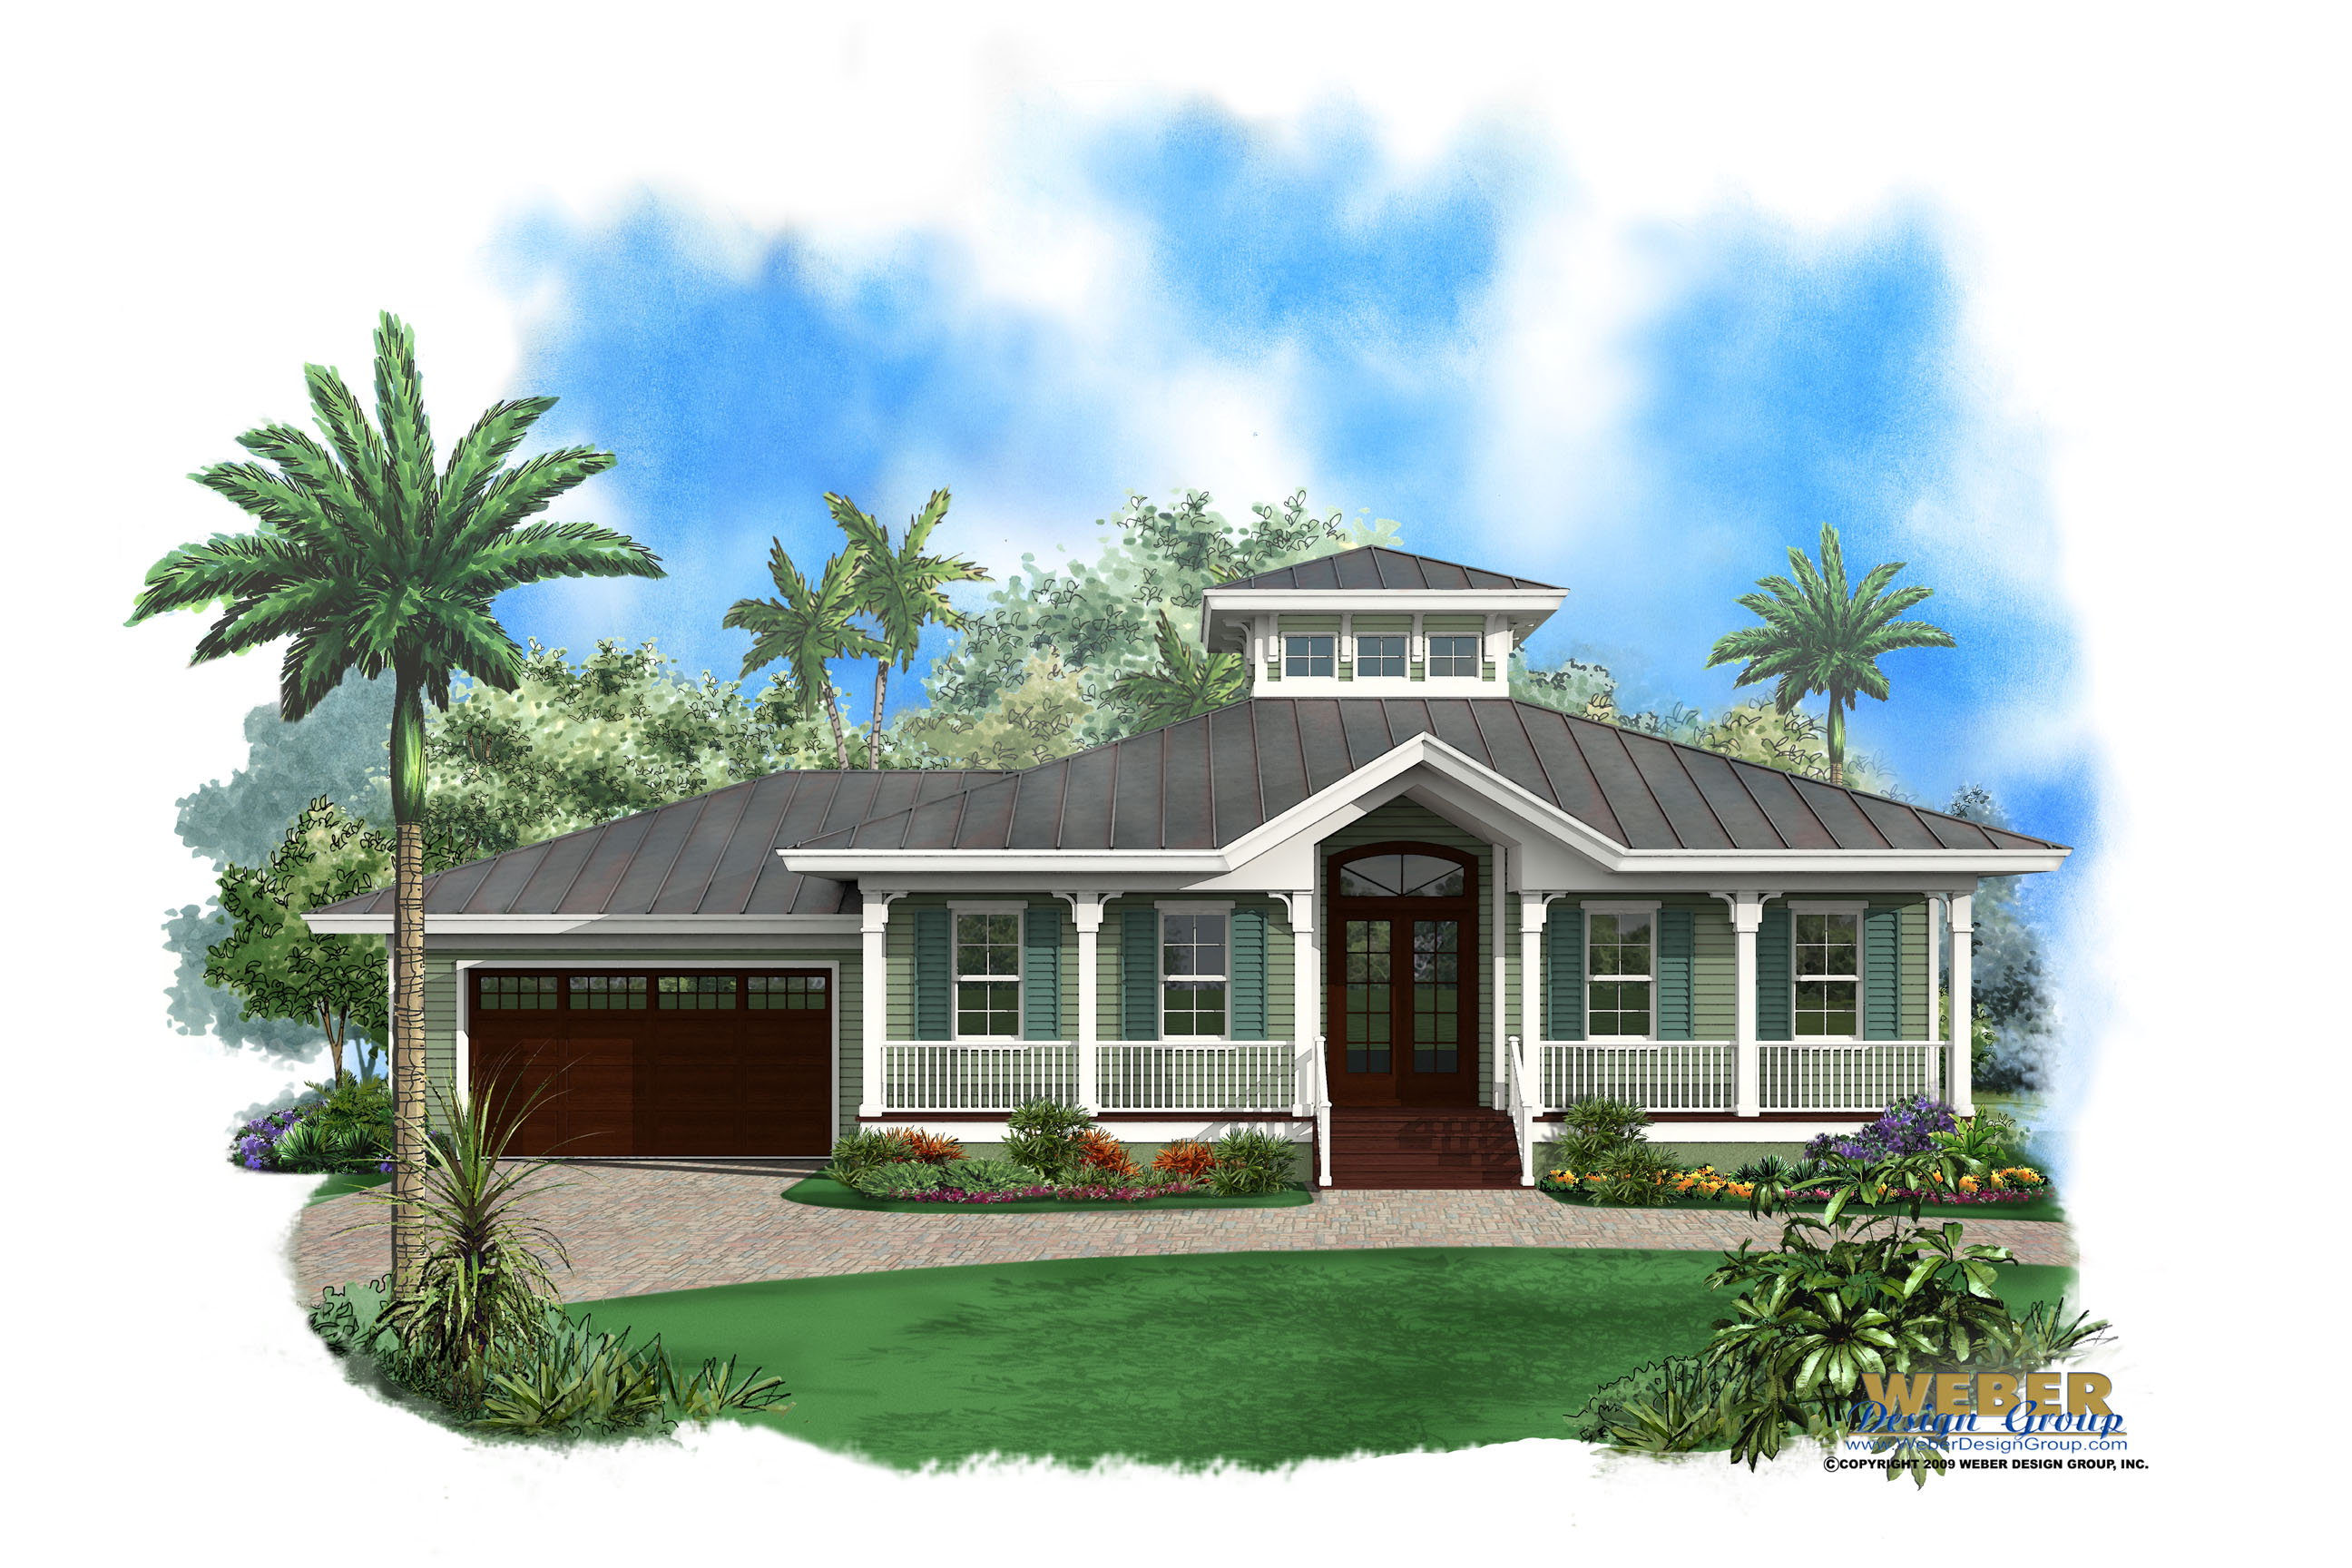 Ambergris Cay House Plan